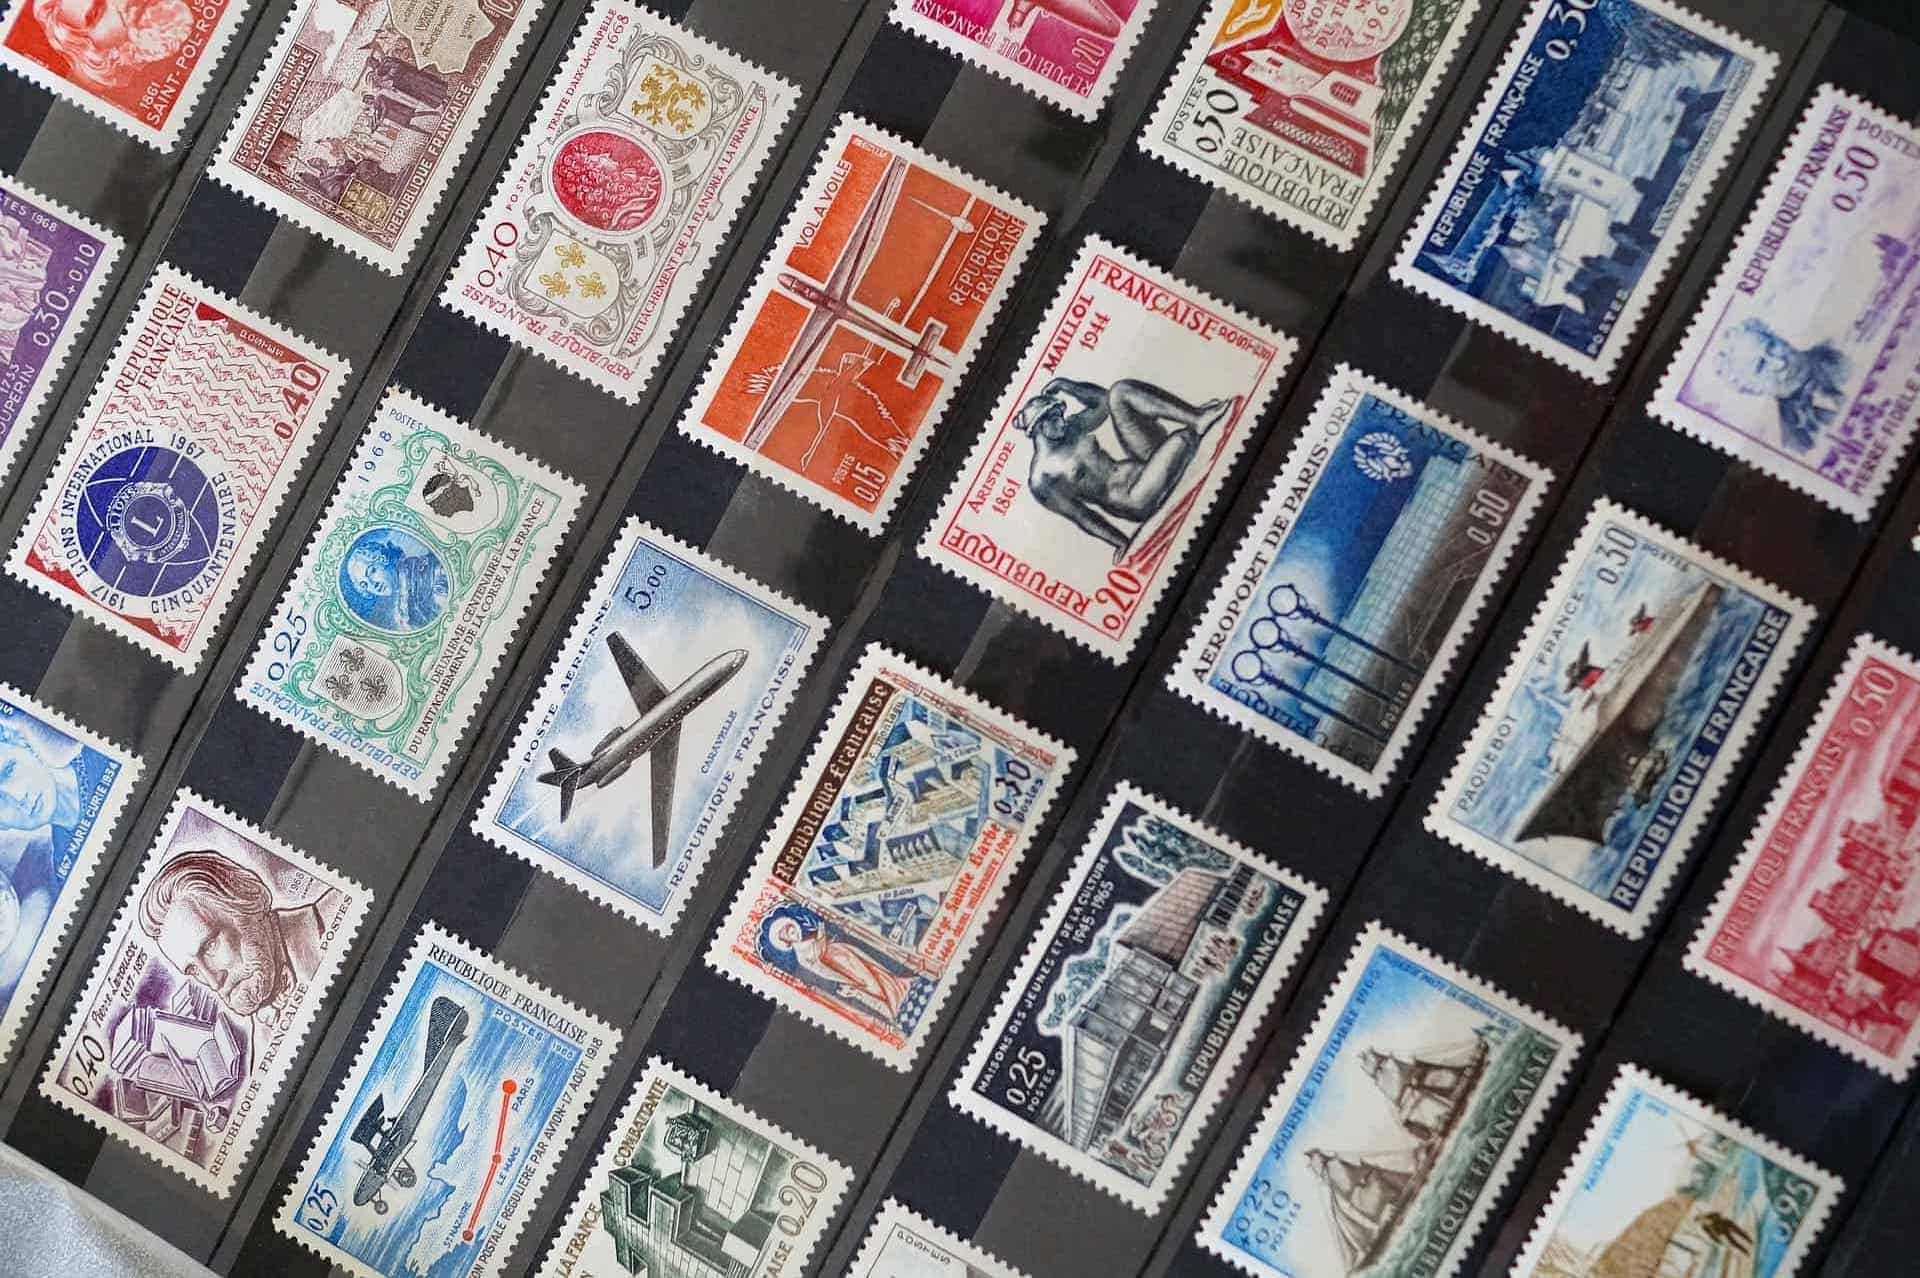 Image of postage stamps